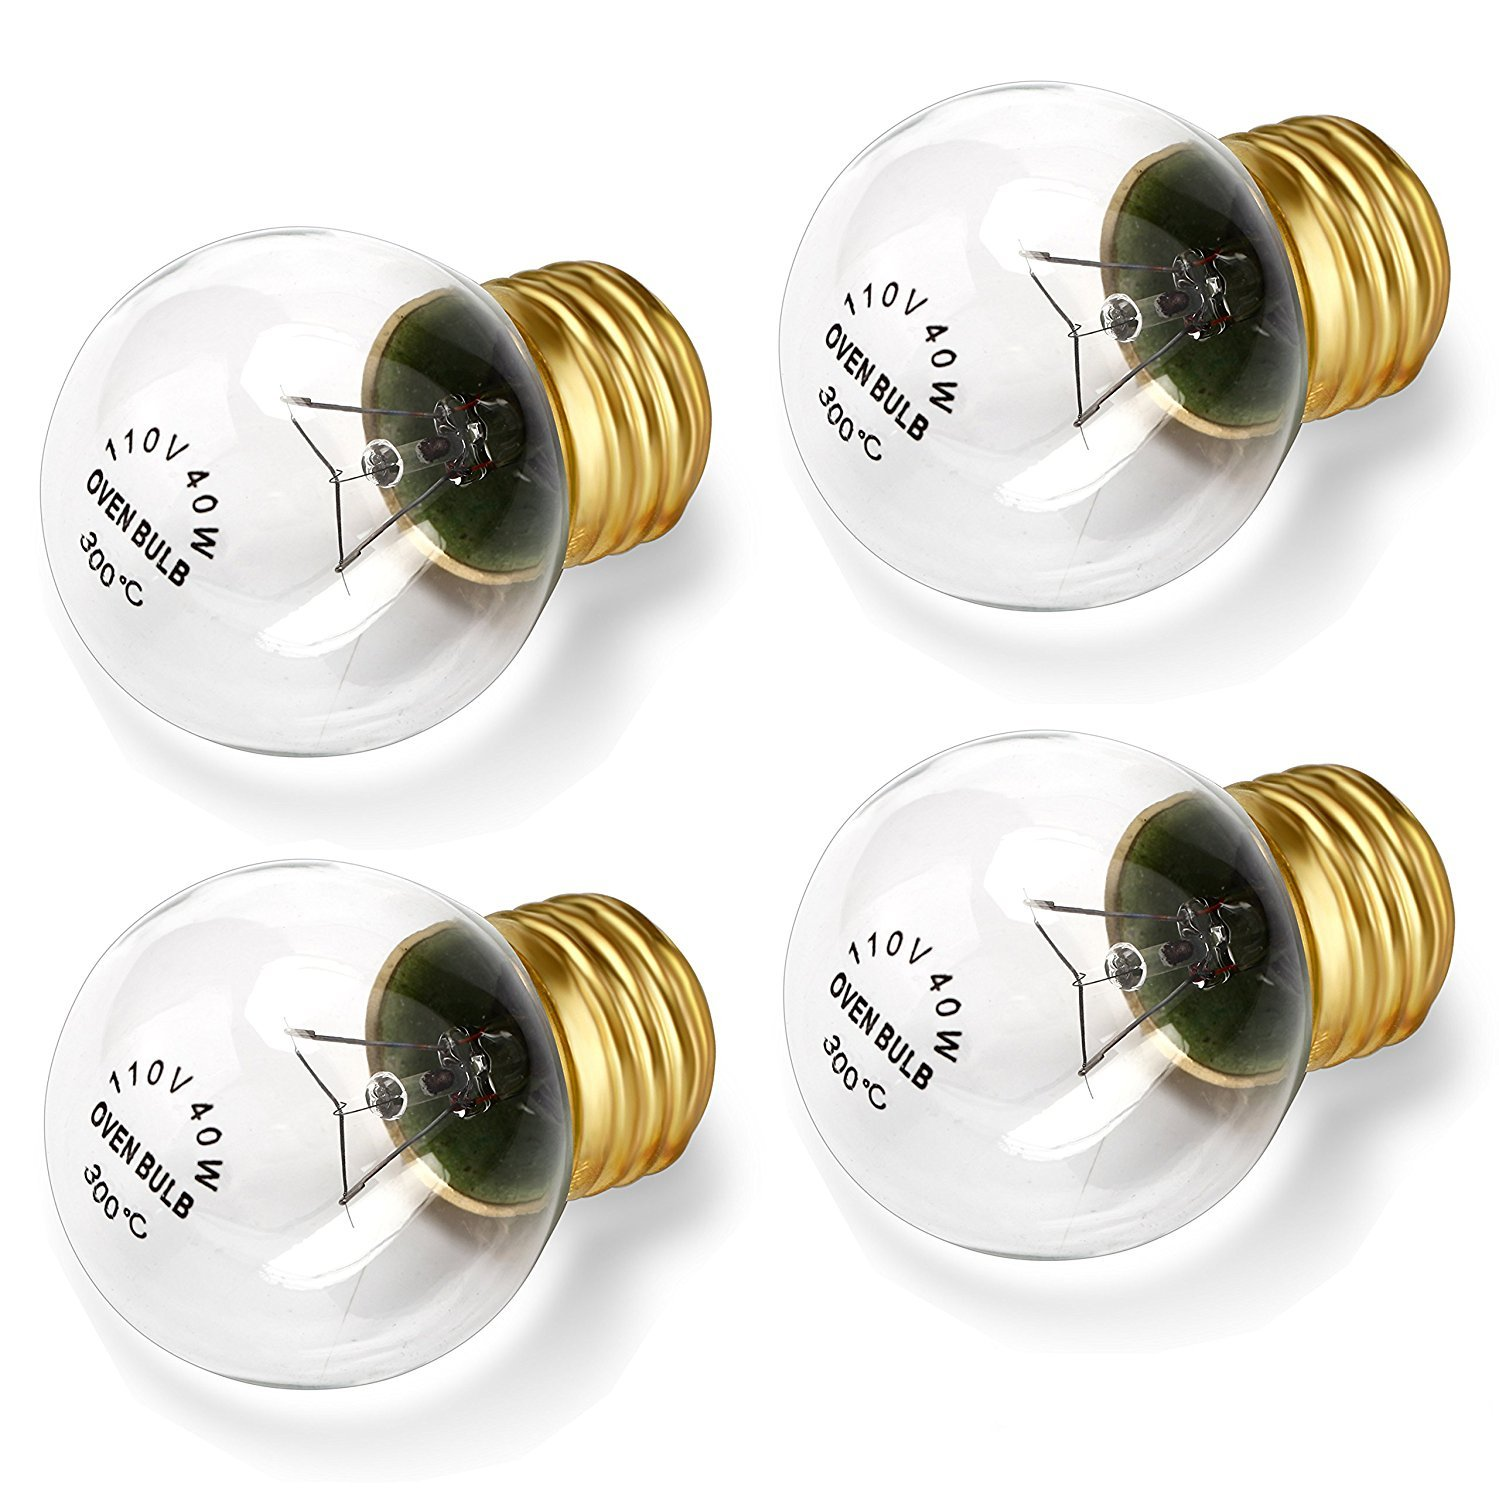 SooFoo Appliance Oven Refrigerator Bulbs, Appliance light bulb, High Temp - E27/E26 Medium Brass Base - 40 Watt/110v - 120v, Clear Glass Oven Bulb, 400Lumens(4-pack)